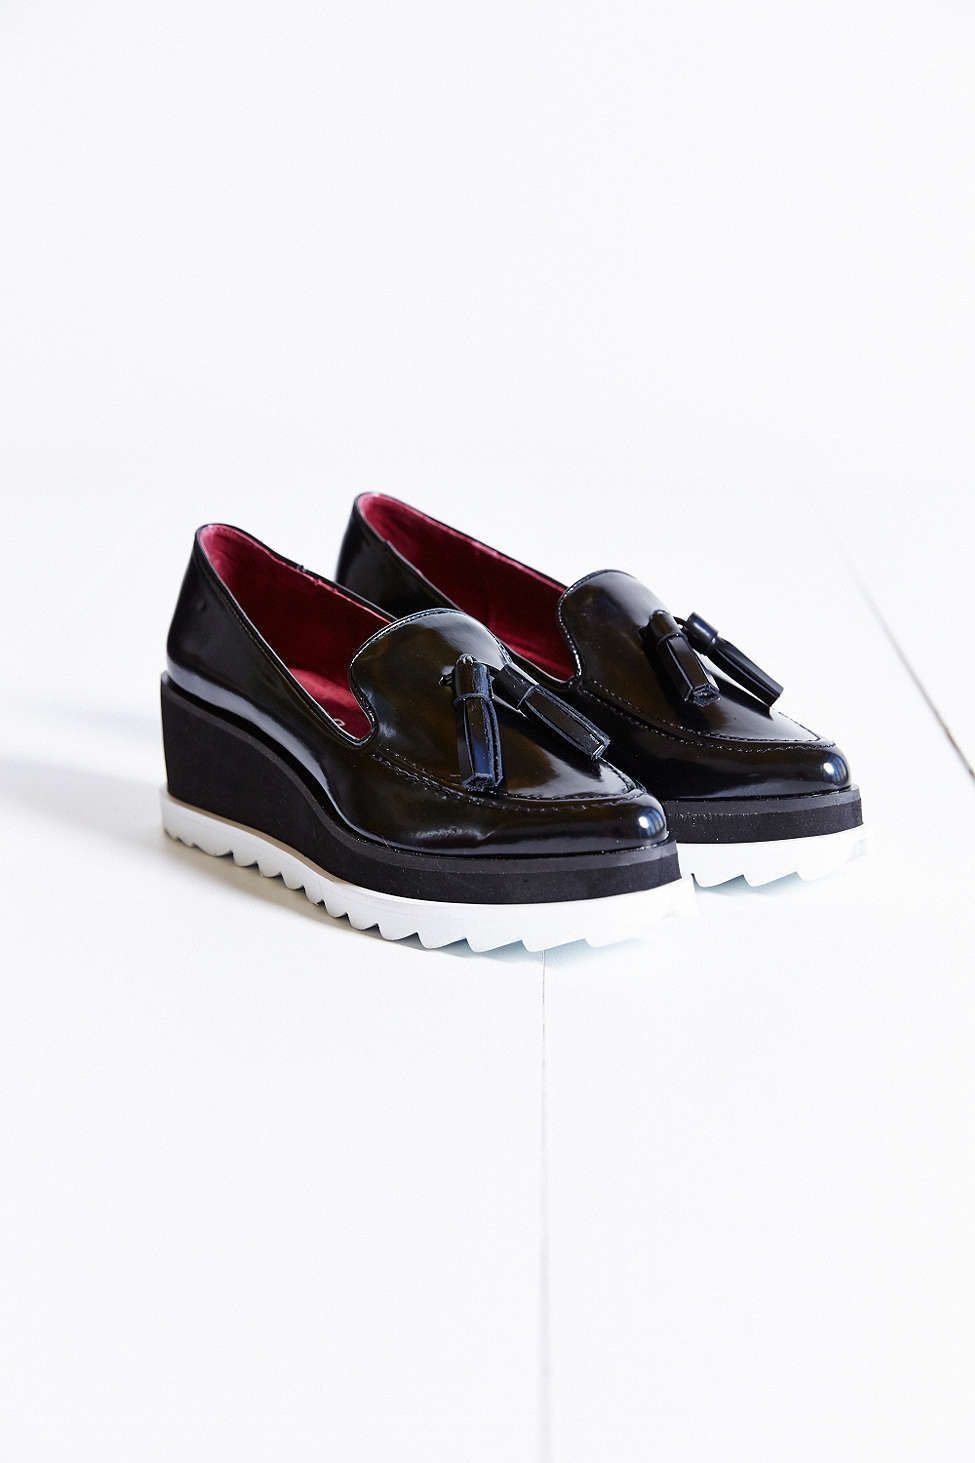 Sixtyseven Harlow Platform Loafer - Urban Outfitters   wshlst ... 2714126b695f